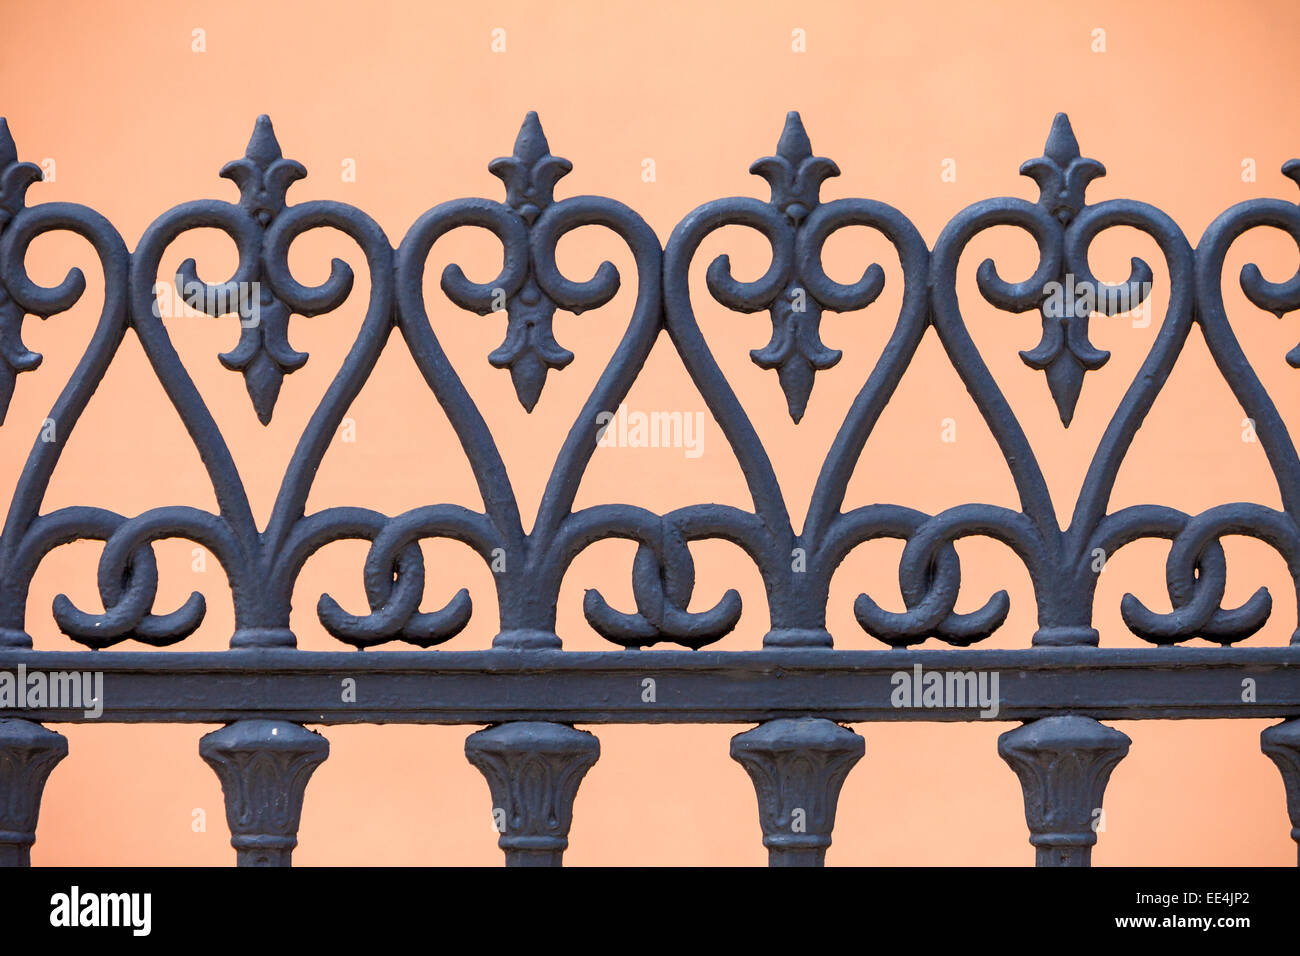 French Quarter, New Orleans, Louisiana.  Cast-iron Railings of the Gauche Villa, Built 1856.  Ironwork produced - Stock Image